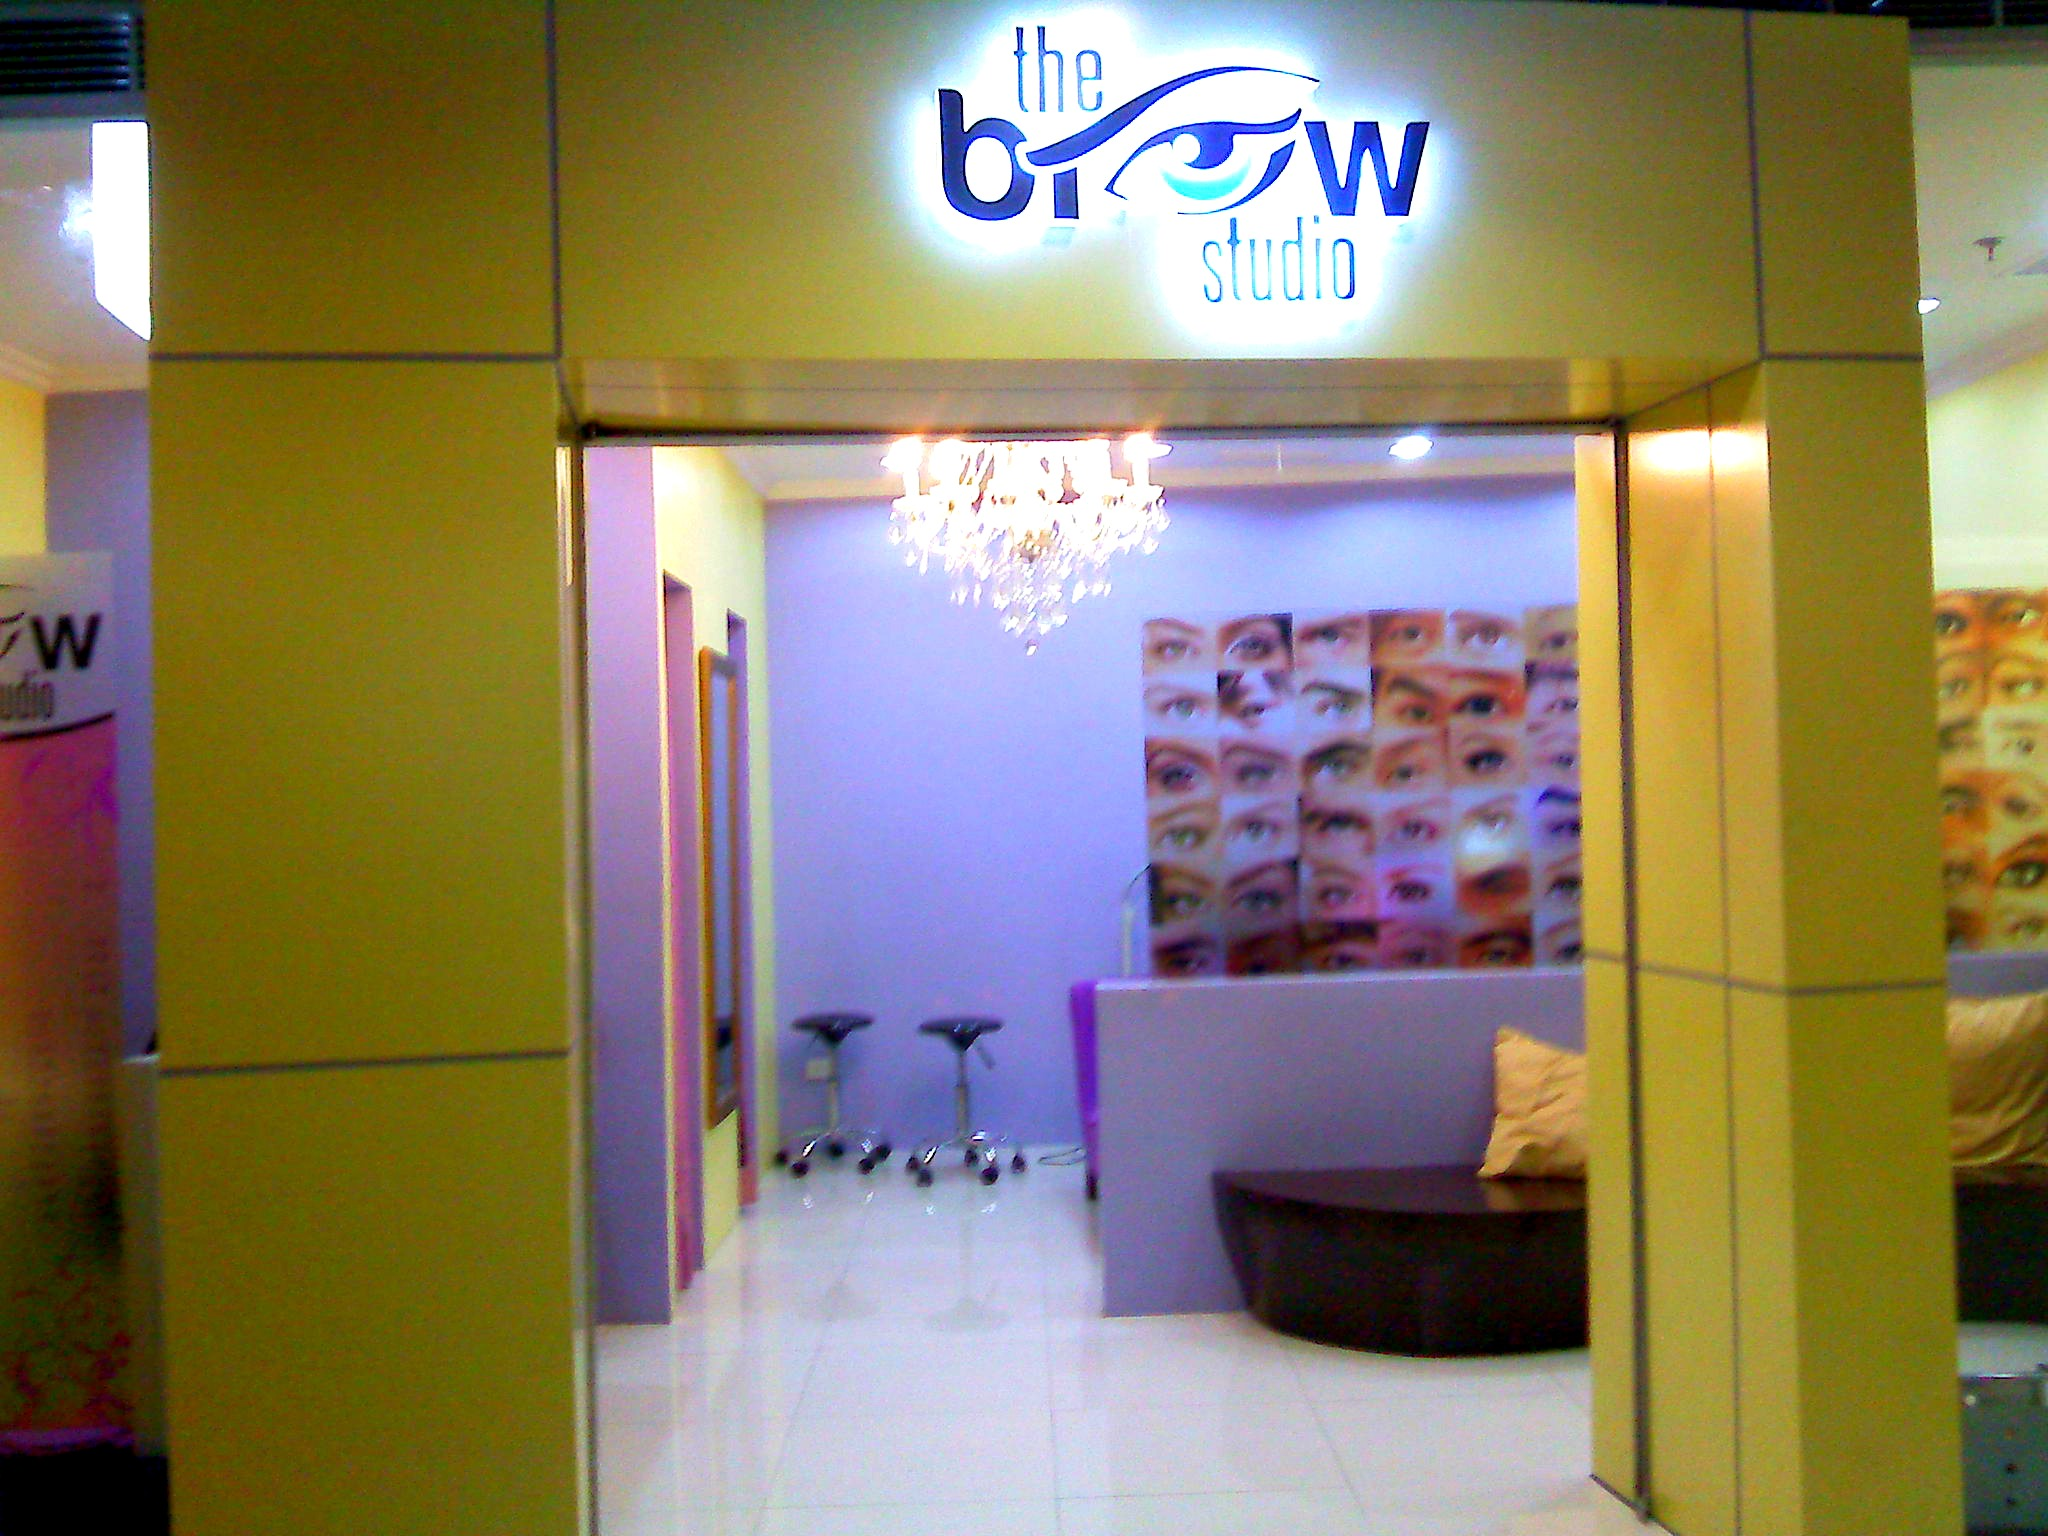 Well-Groomed Brows at the Brow Studio – Lust and Wandering